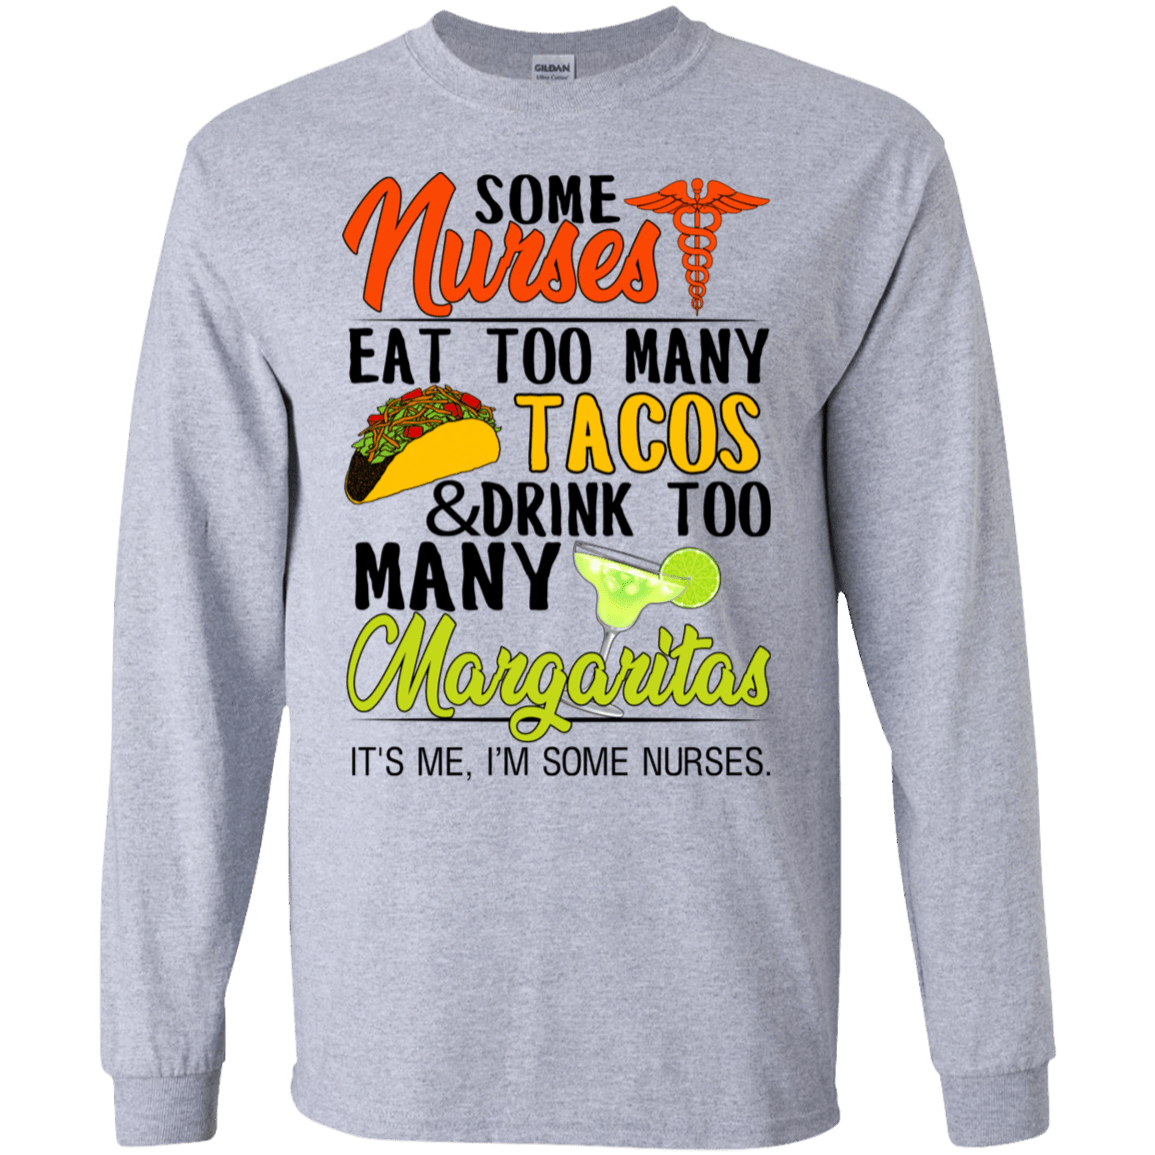 Some Nurses Eat Too Many Tacos & Drink Too Many Margaritas It's Me I'm Some Nurses T-Shirts & Hoodies 30-188-76452265-335 - Tee Ript